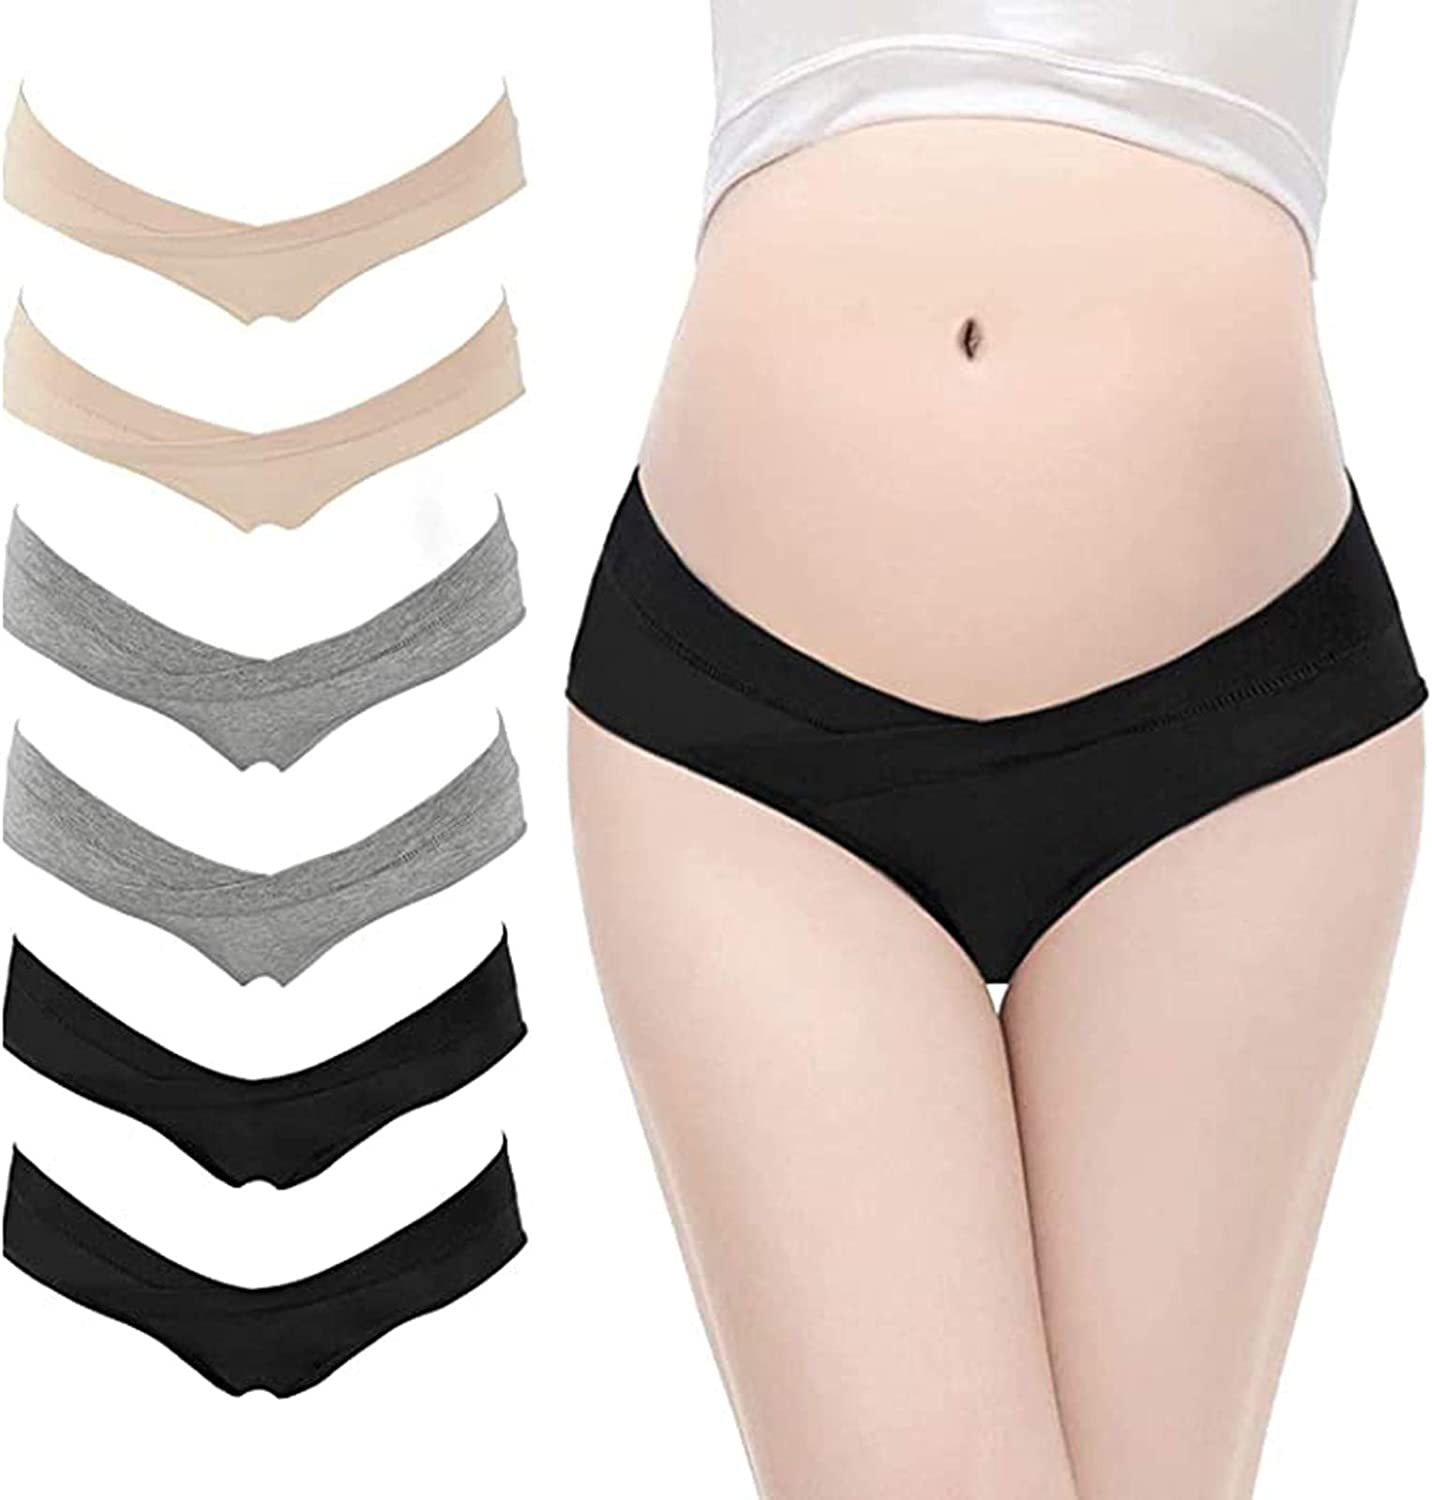 6 Pack Womens Cotton Maternity Underwear,Healthy Maternity Panties Postpartum Mother Low Waist V Shaped Underwear